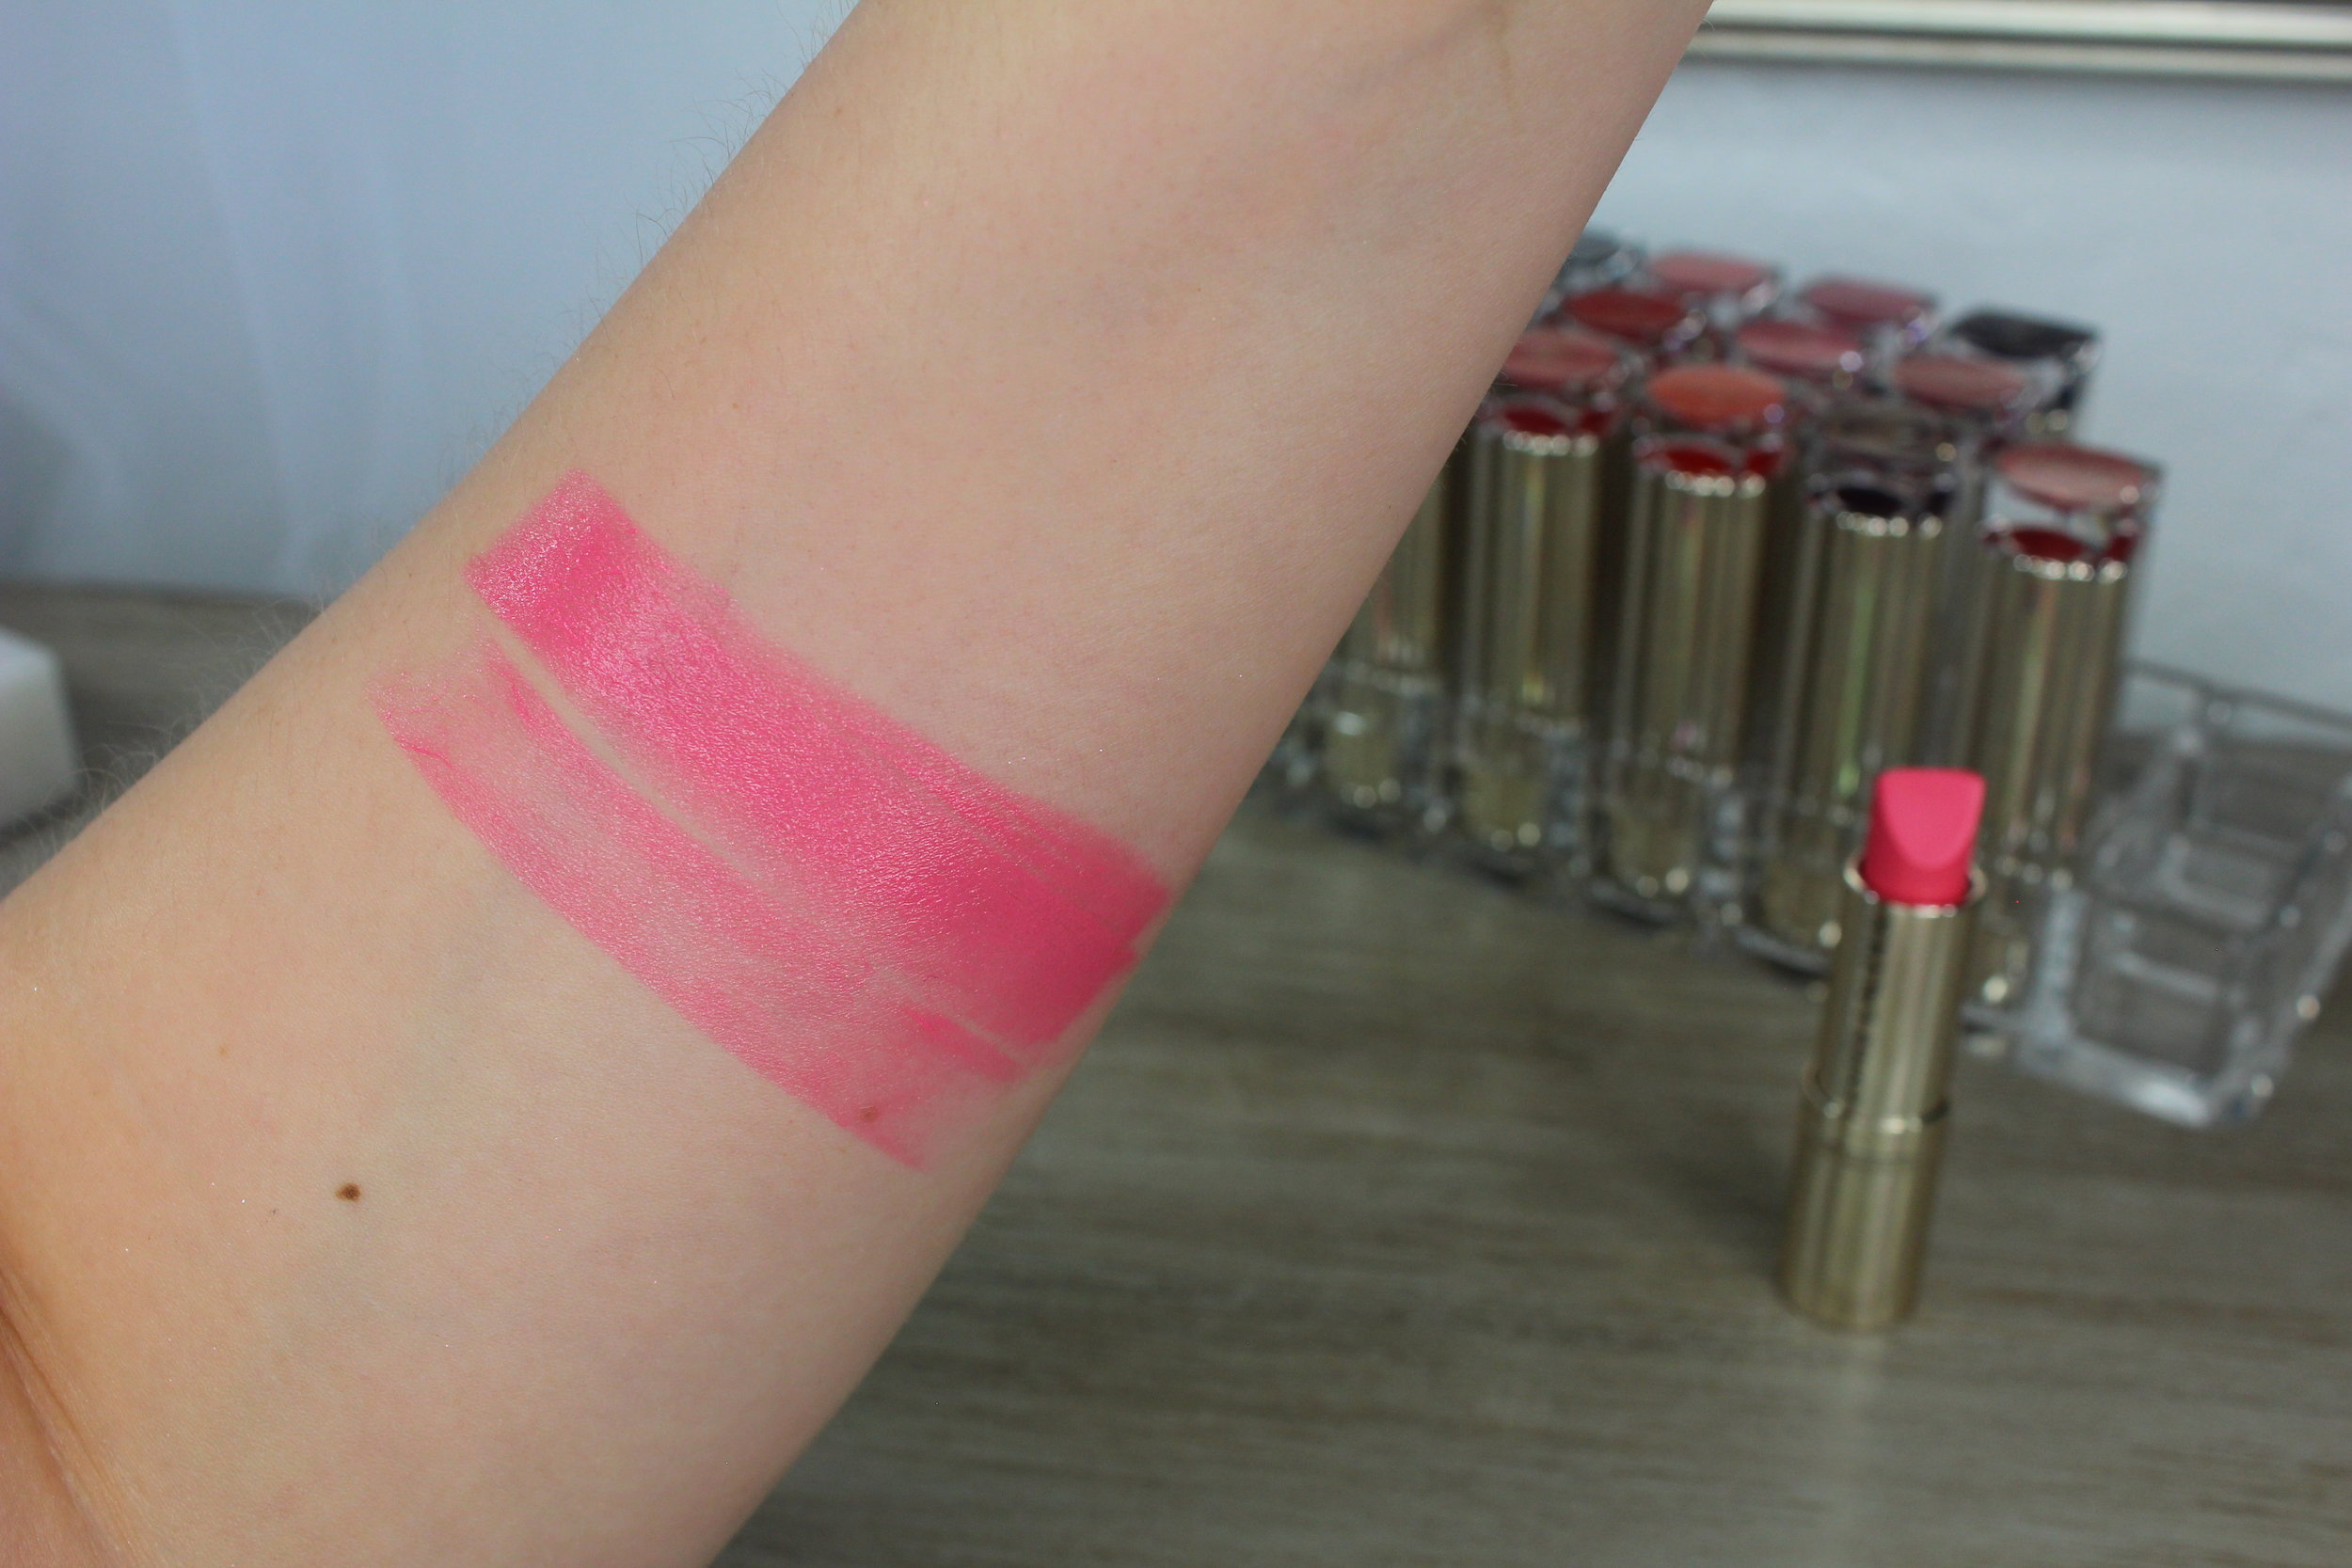 Estee Lauder Sky High (260) swatch